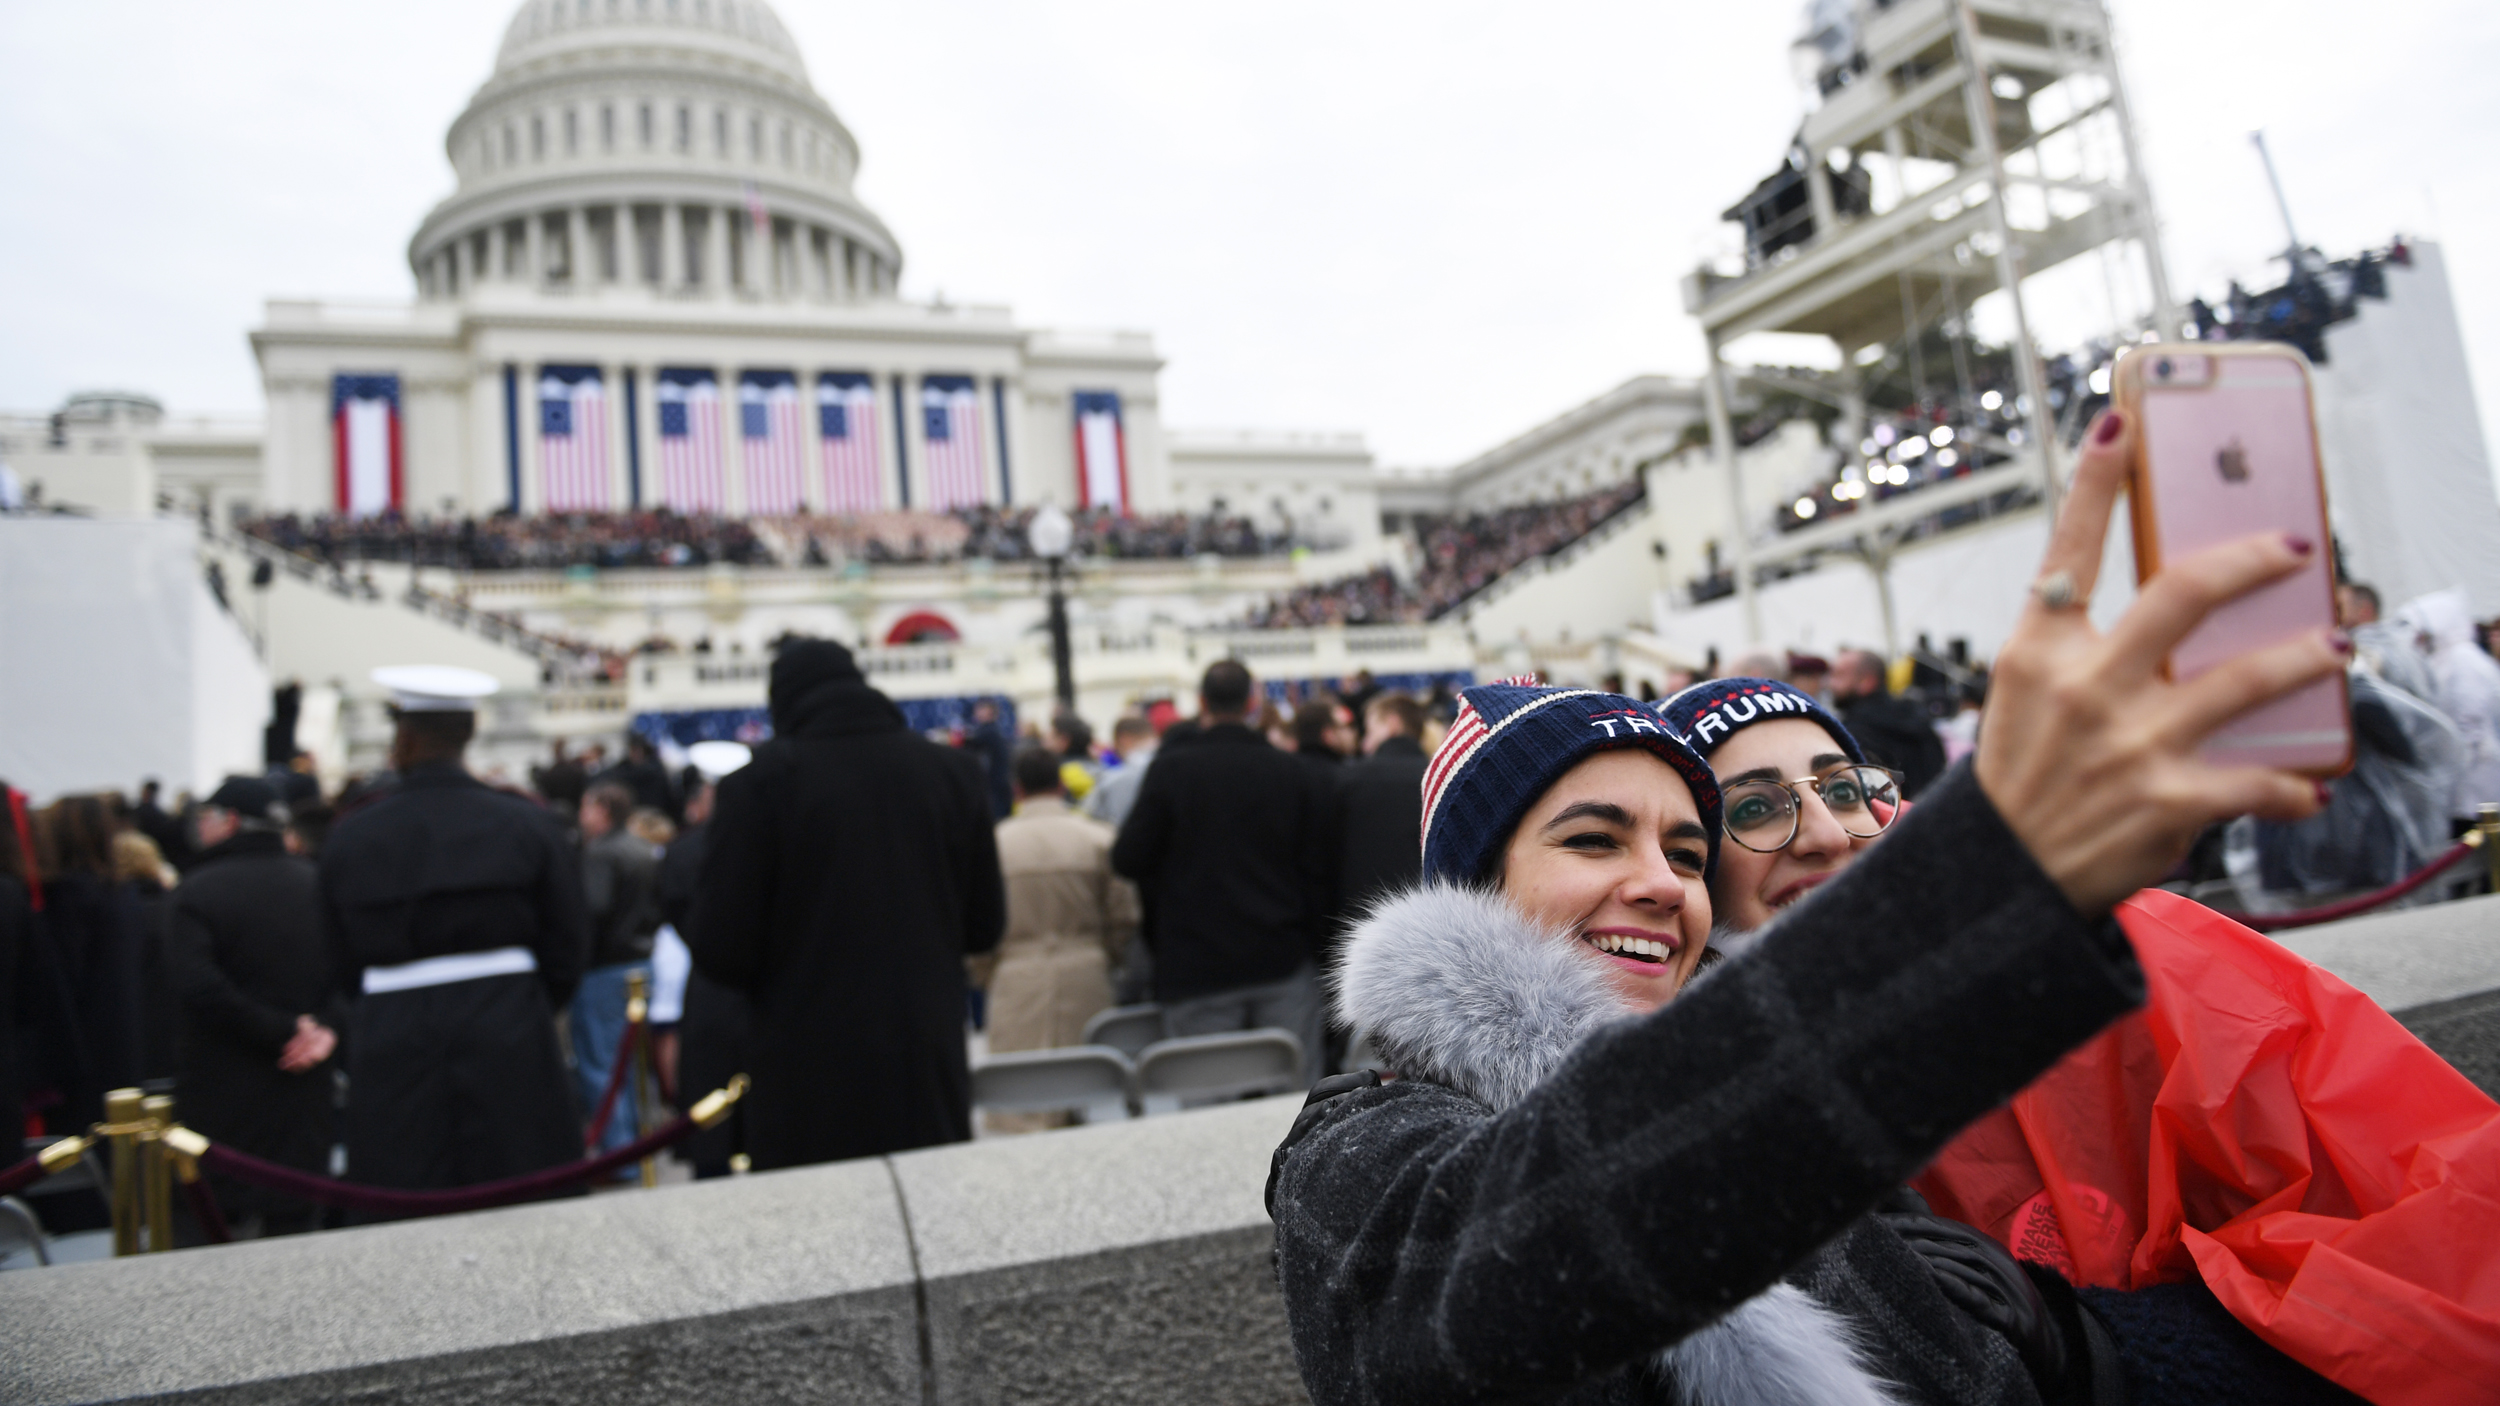 Supporters of Donald Trump take selfies before the start of during the inauguration of President Donald Trump January 20, 2017 on the National Mall in Washington D.C.